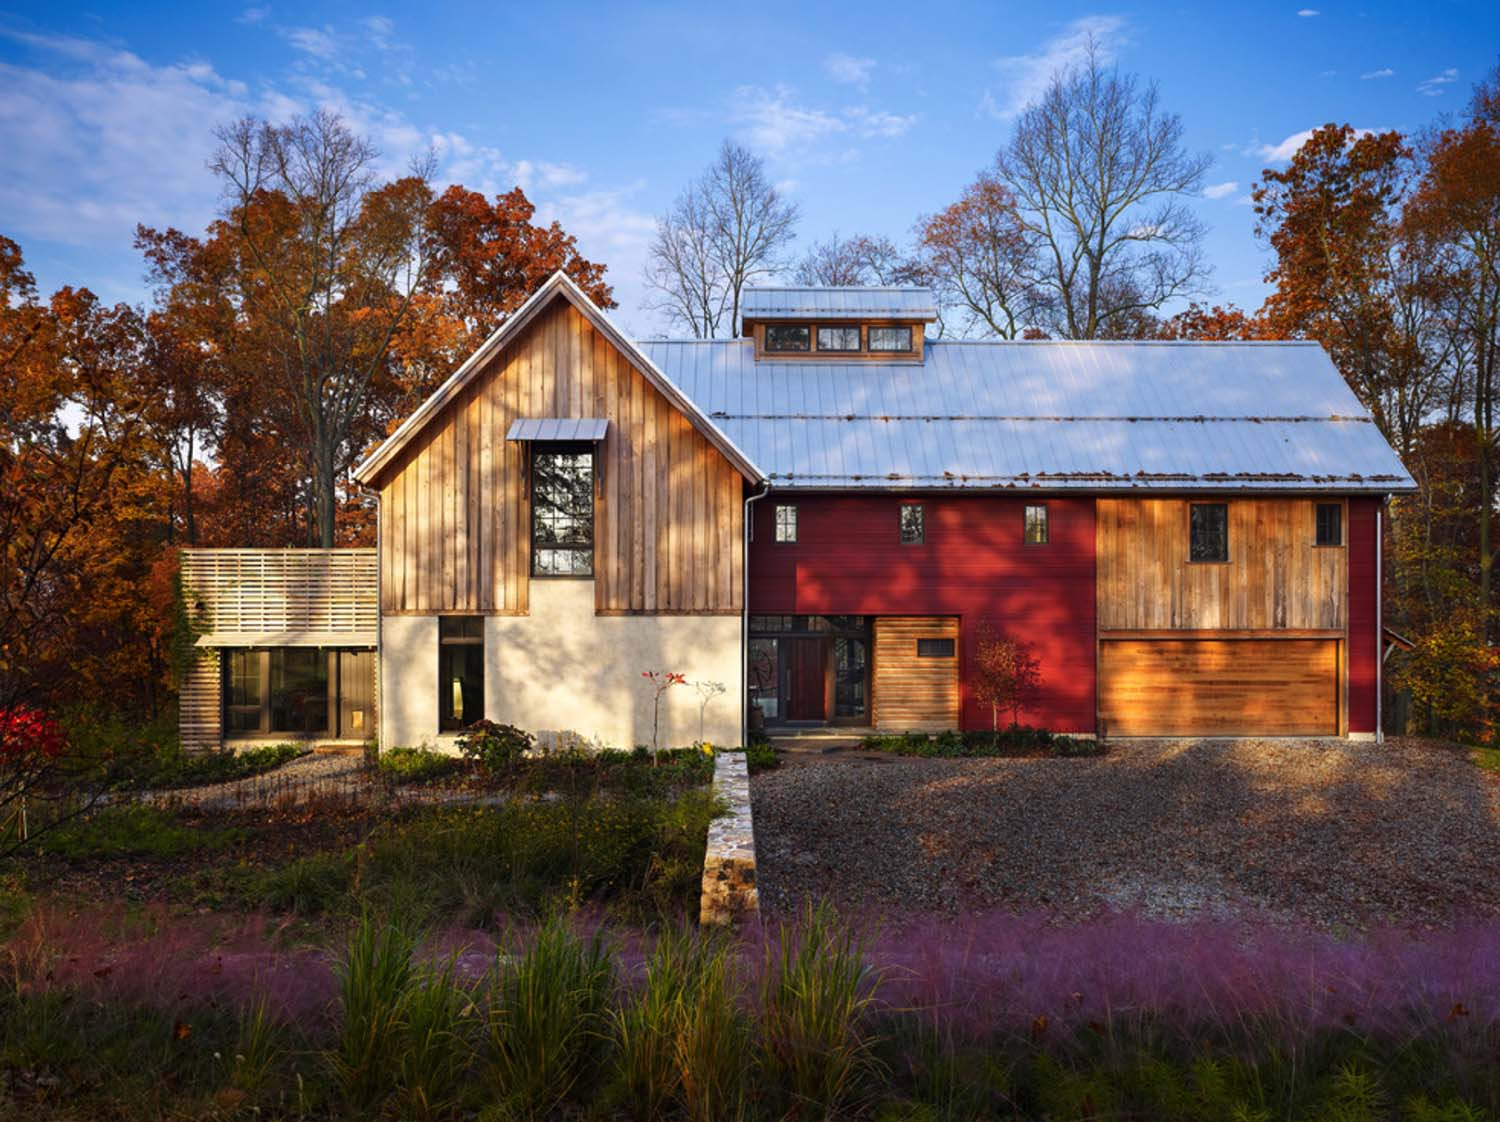 Sustainable modern rustic barn house in pennsylvania for Modern rustic home plans